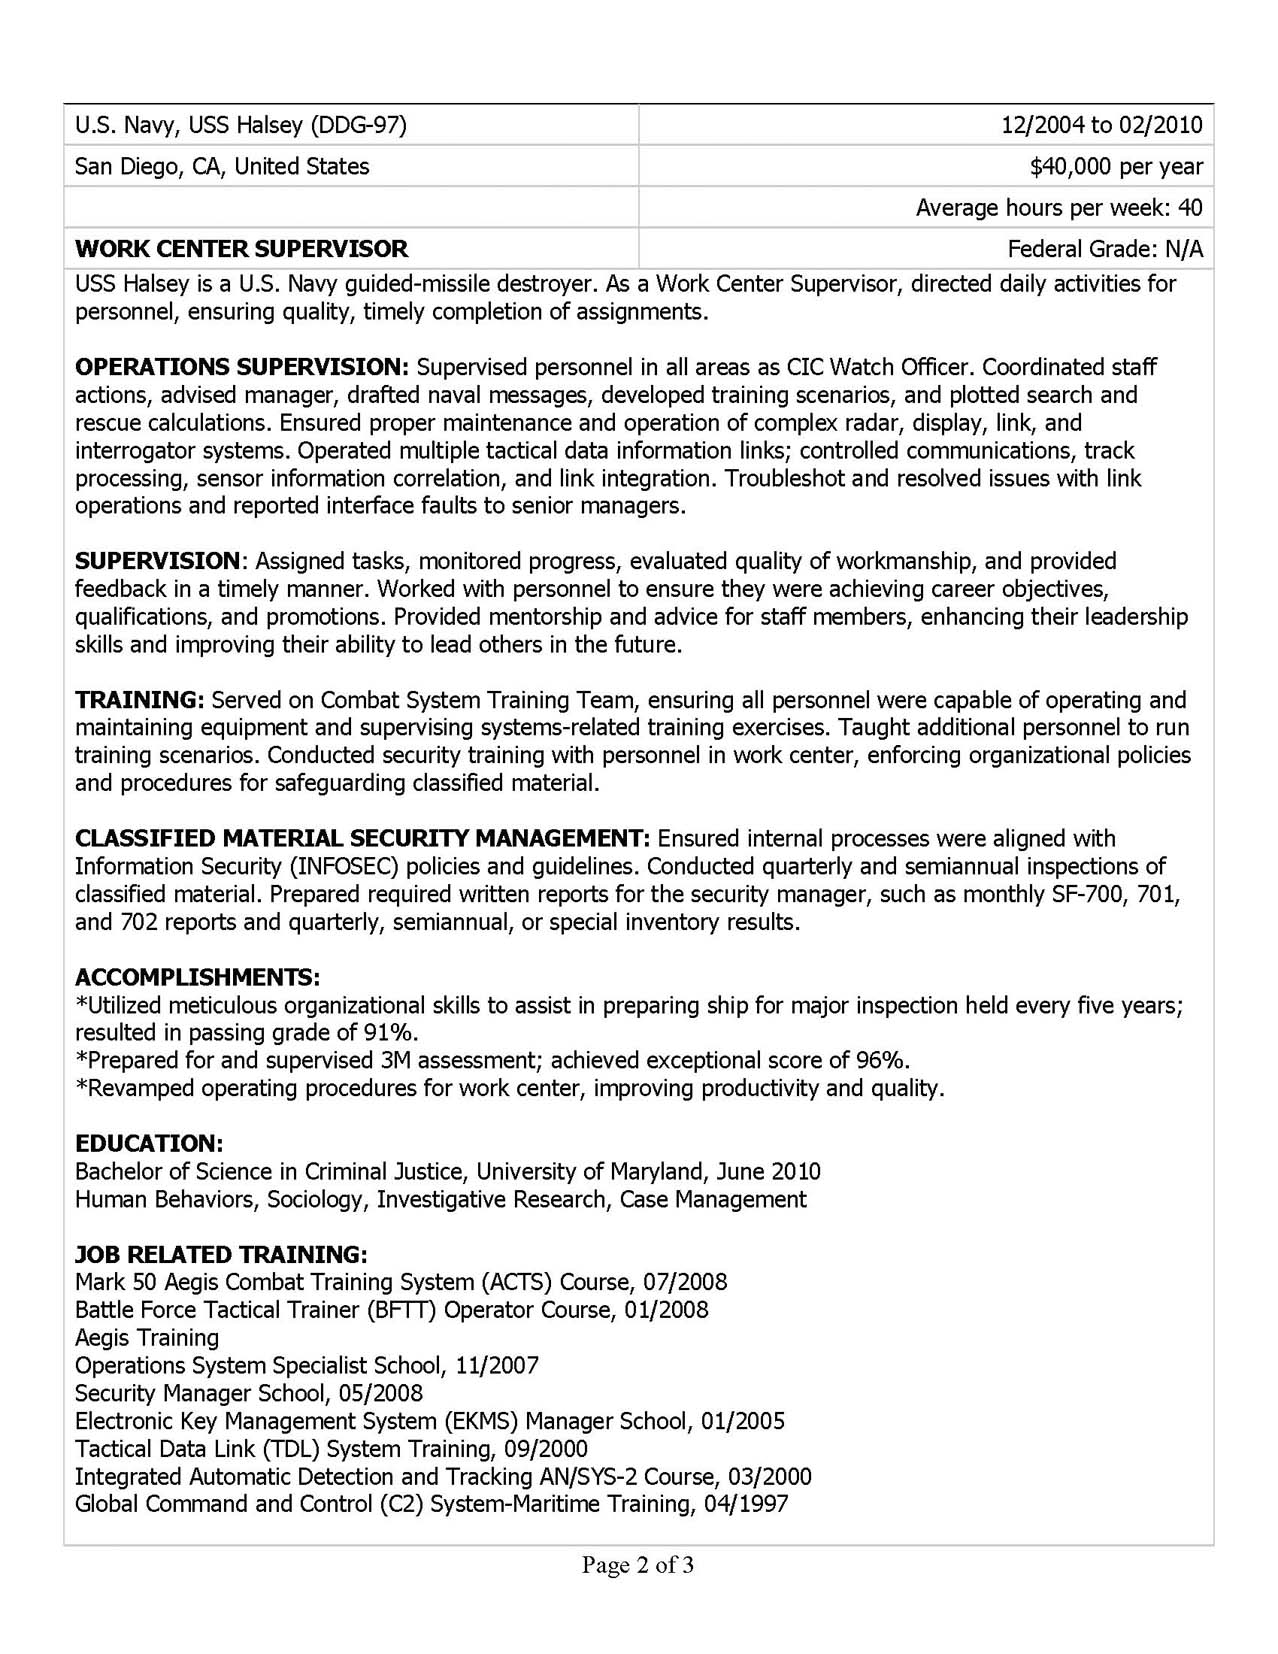 veteran resume writing services best military to civilian service usajobs sample oracle Resume Military Resume Writing Service